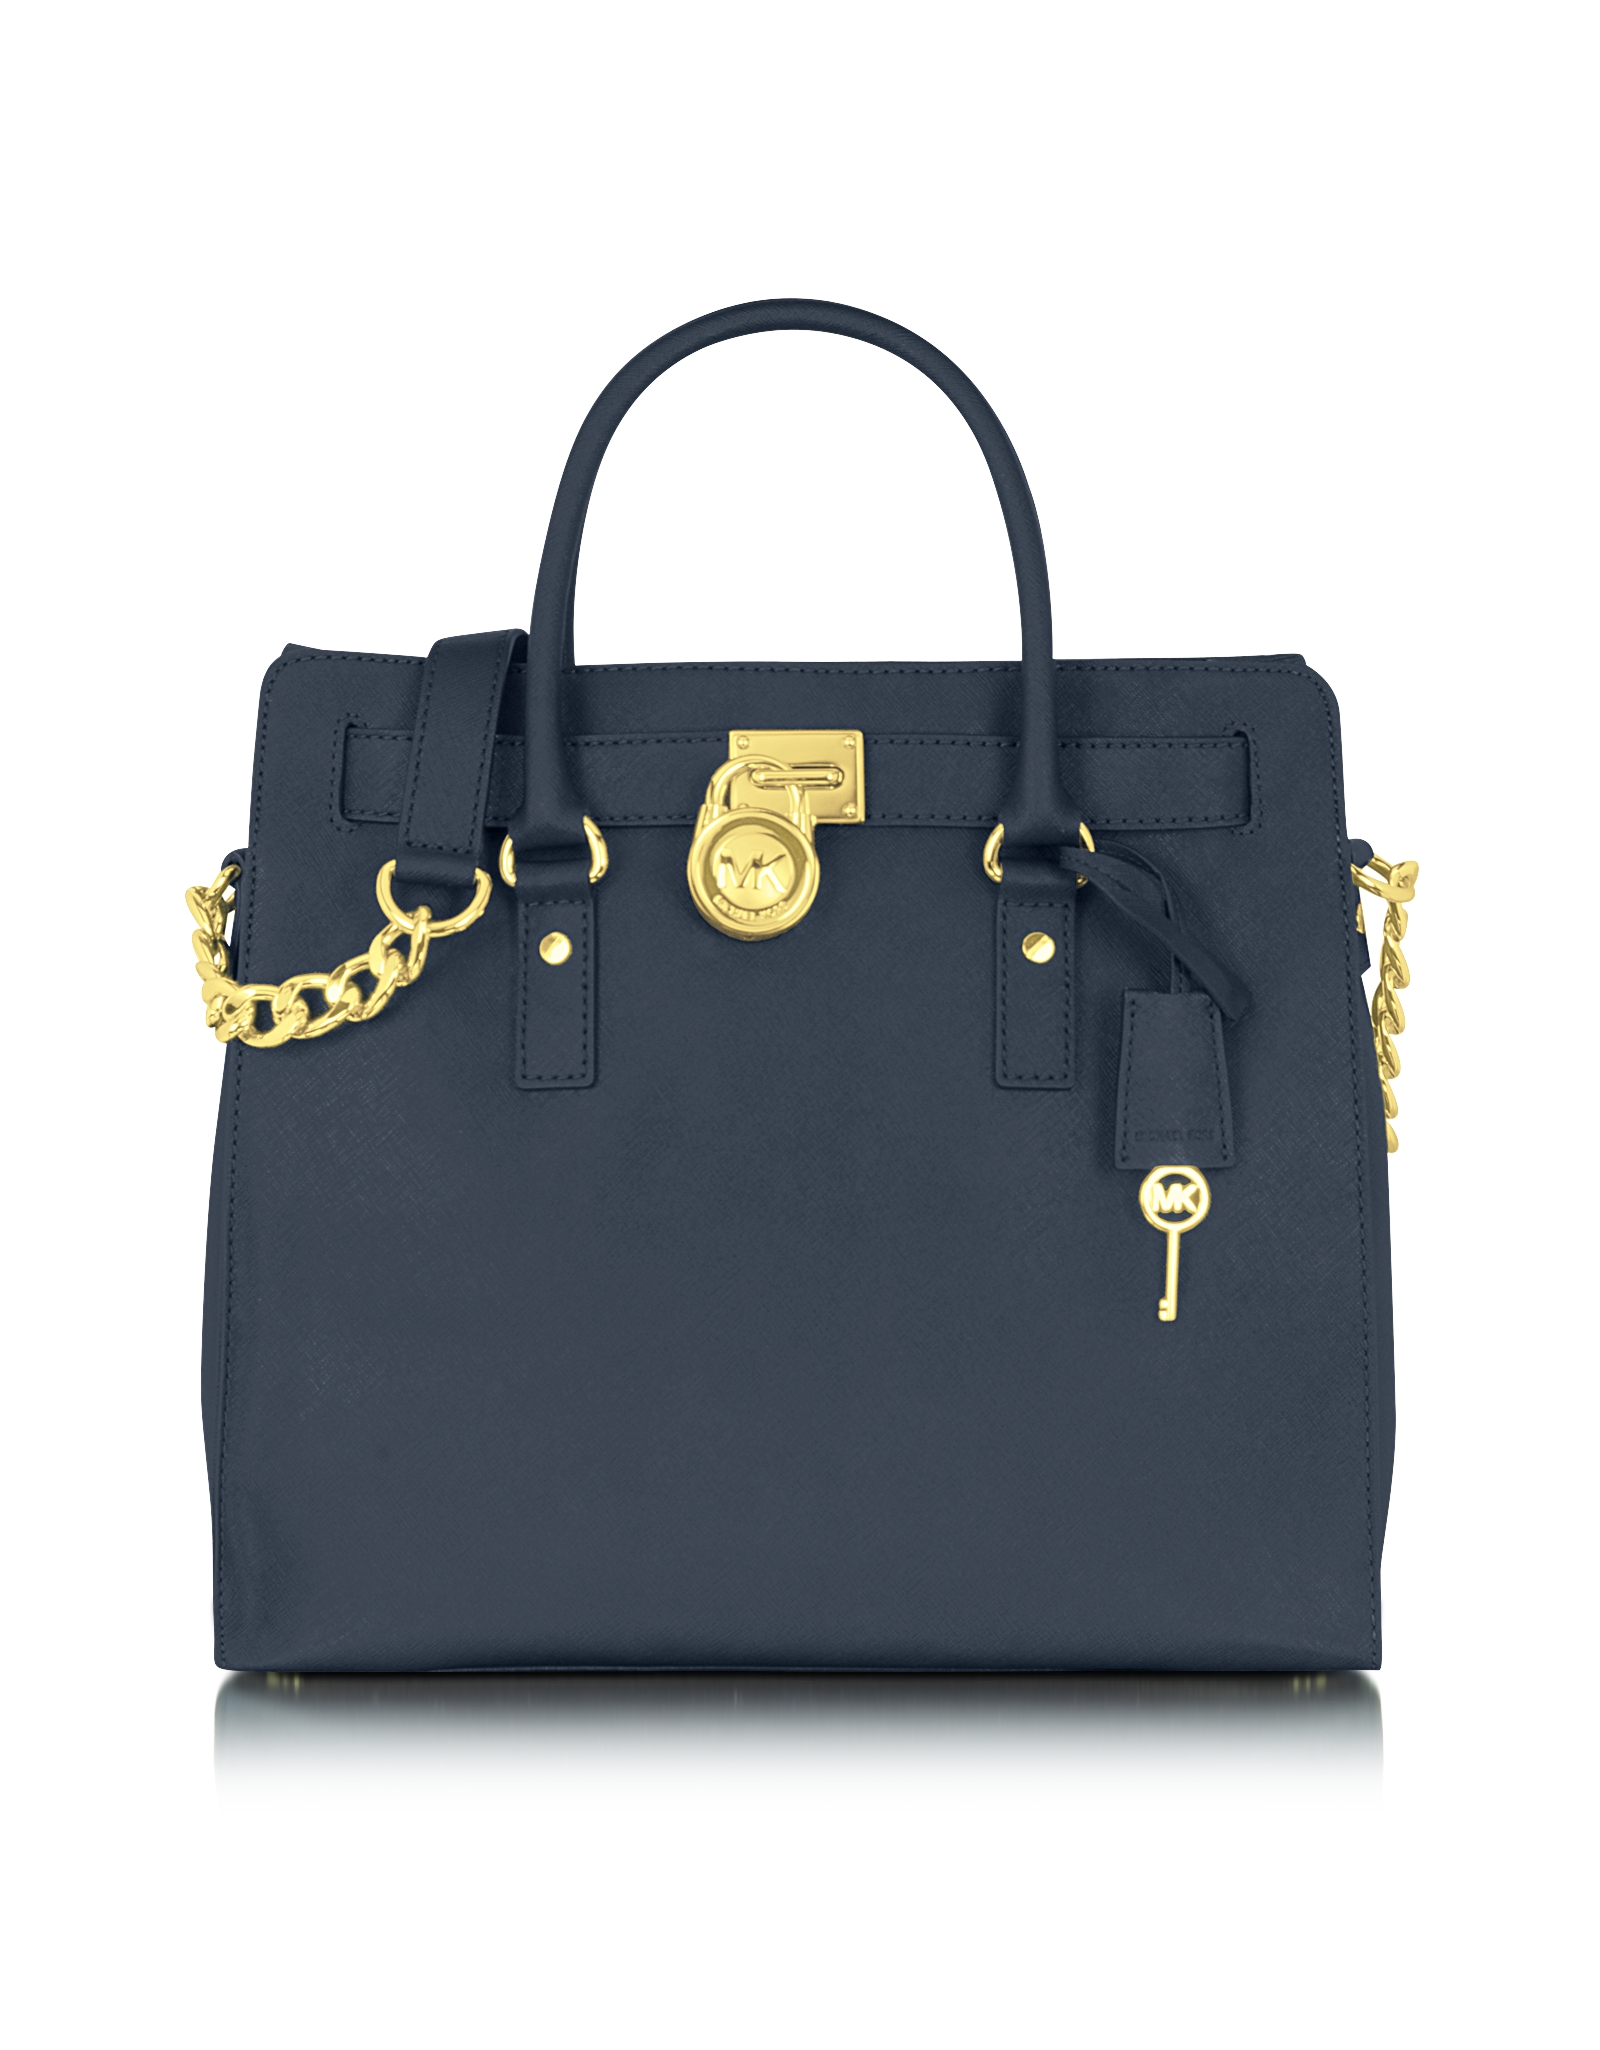 michael kors hamilton saffiano leather northsouth tote in blue navy car interior design. Black Bedroom Furniture Sets. Home Design Ideas